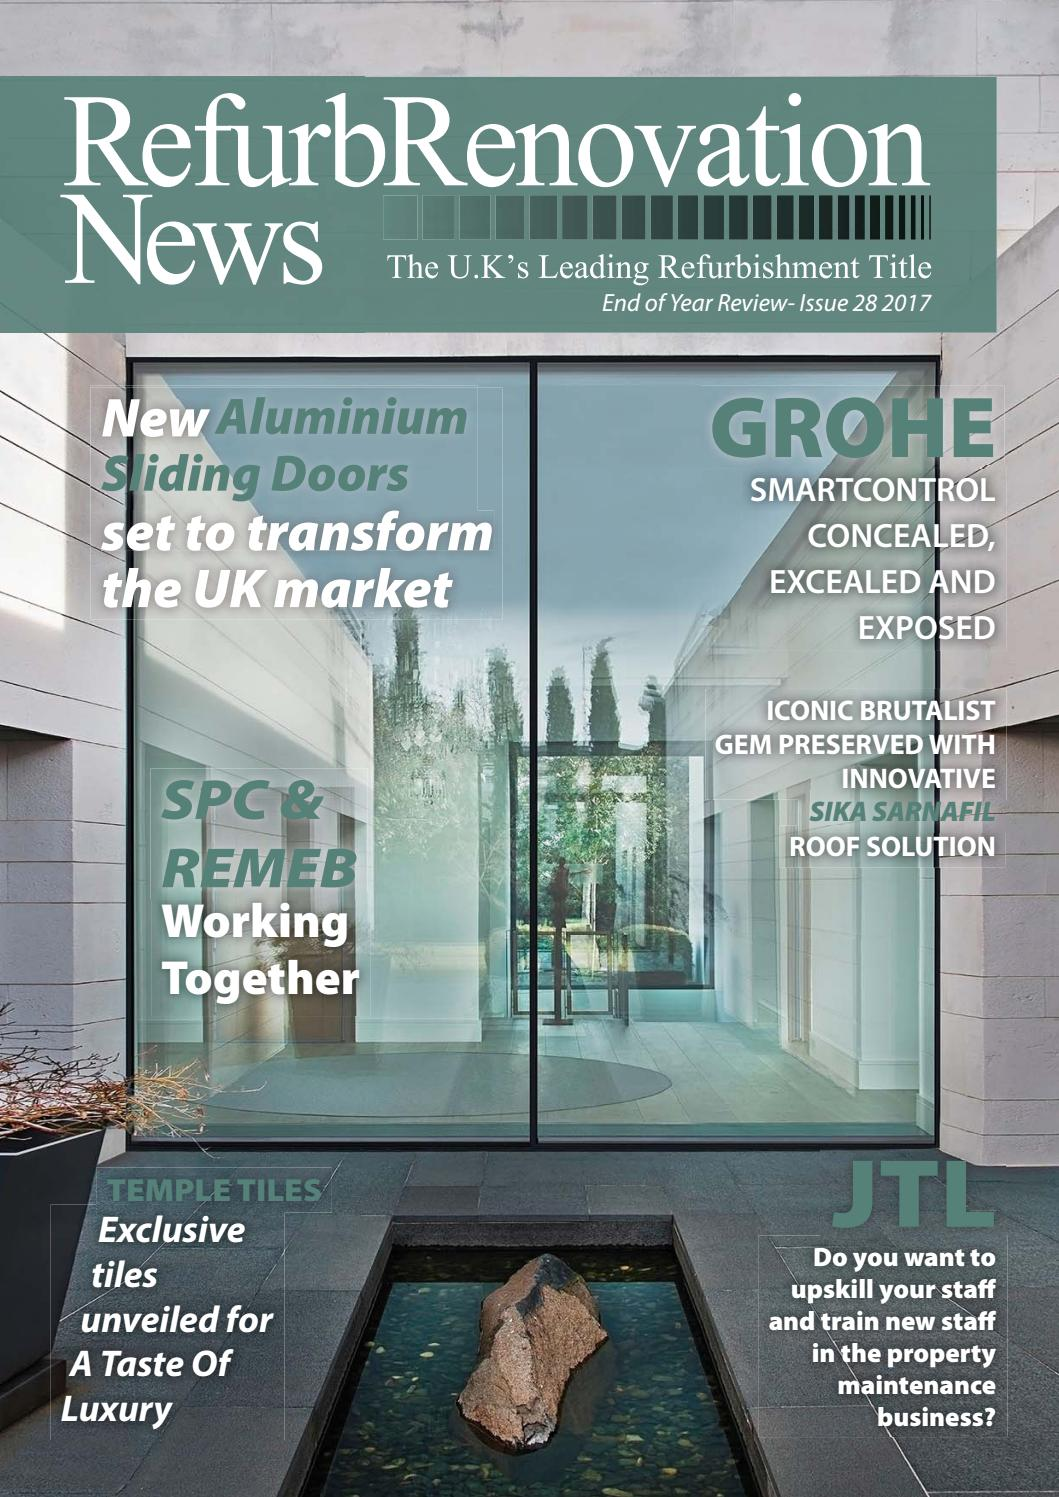 Refurb Renovation News Issue 28 End Of Year Review 2017 By